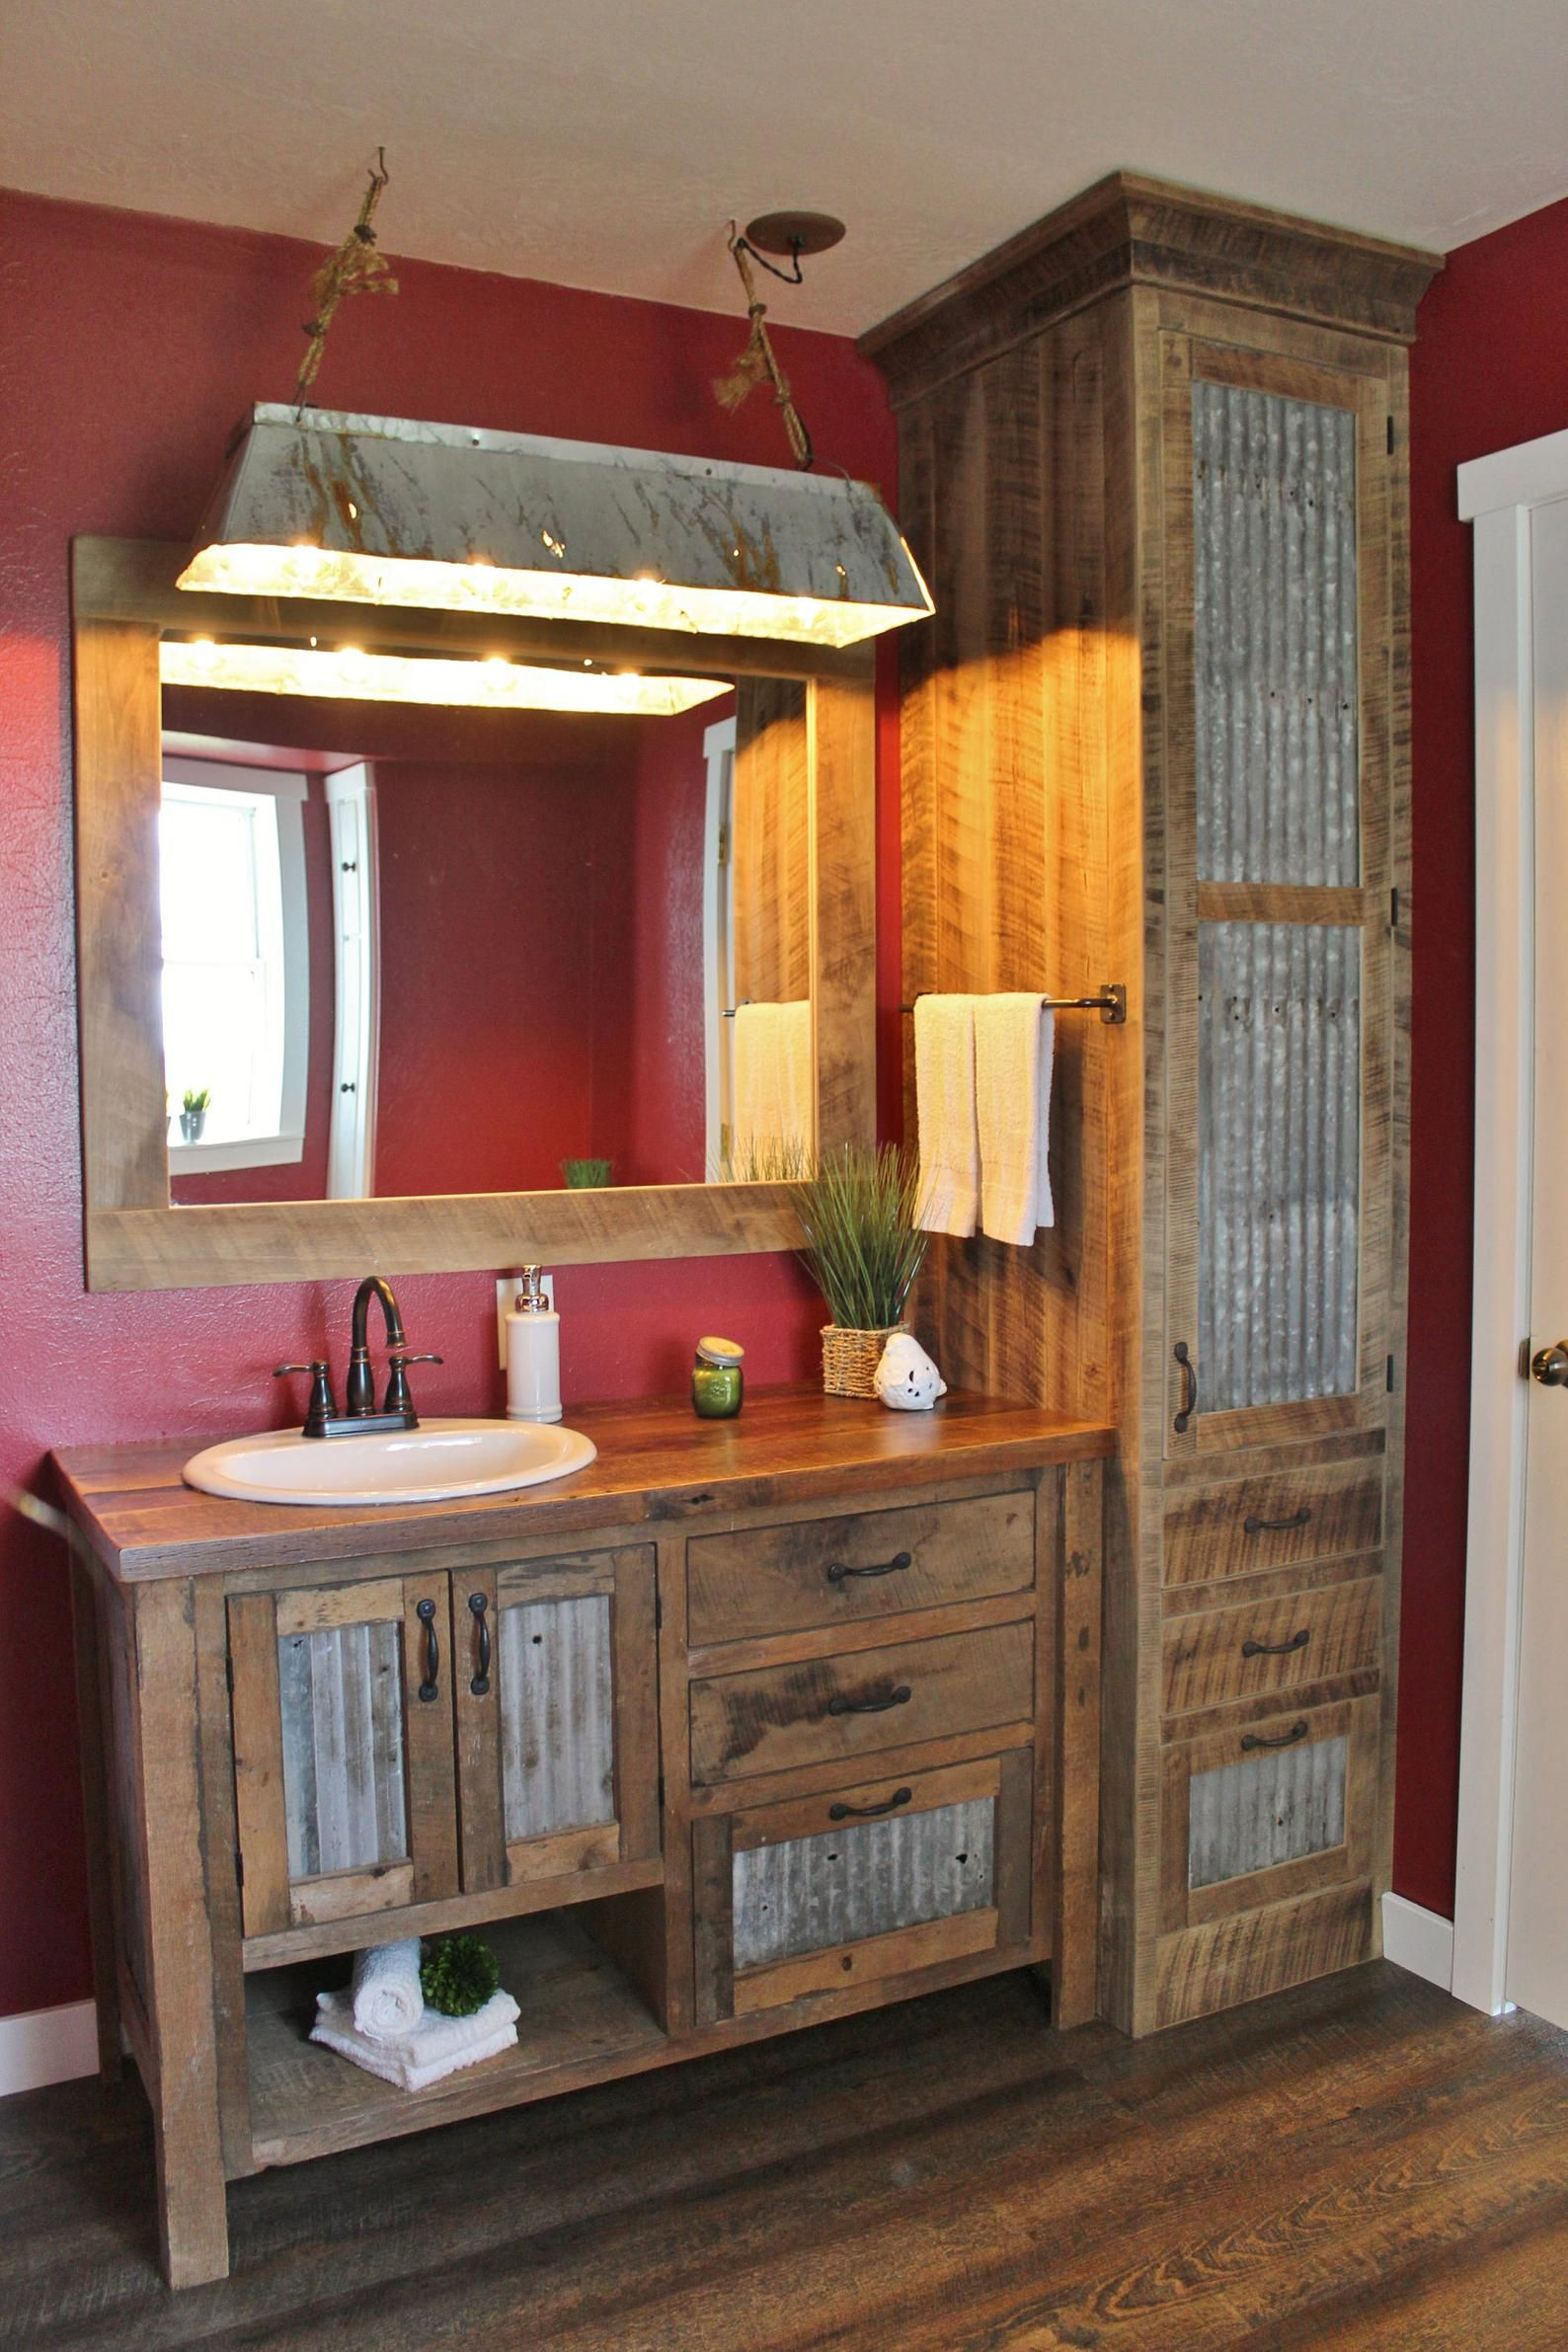 Rustic Tall Storage Reclaimed Barn Wood Cabinet W Tin Doors Unfinished 3899 Rustic Bathrooms Rustic Bathroom Designs Rustic Bathroom Vanities